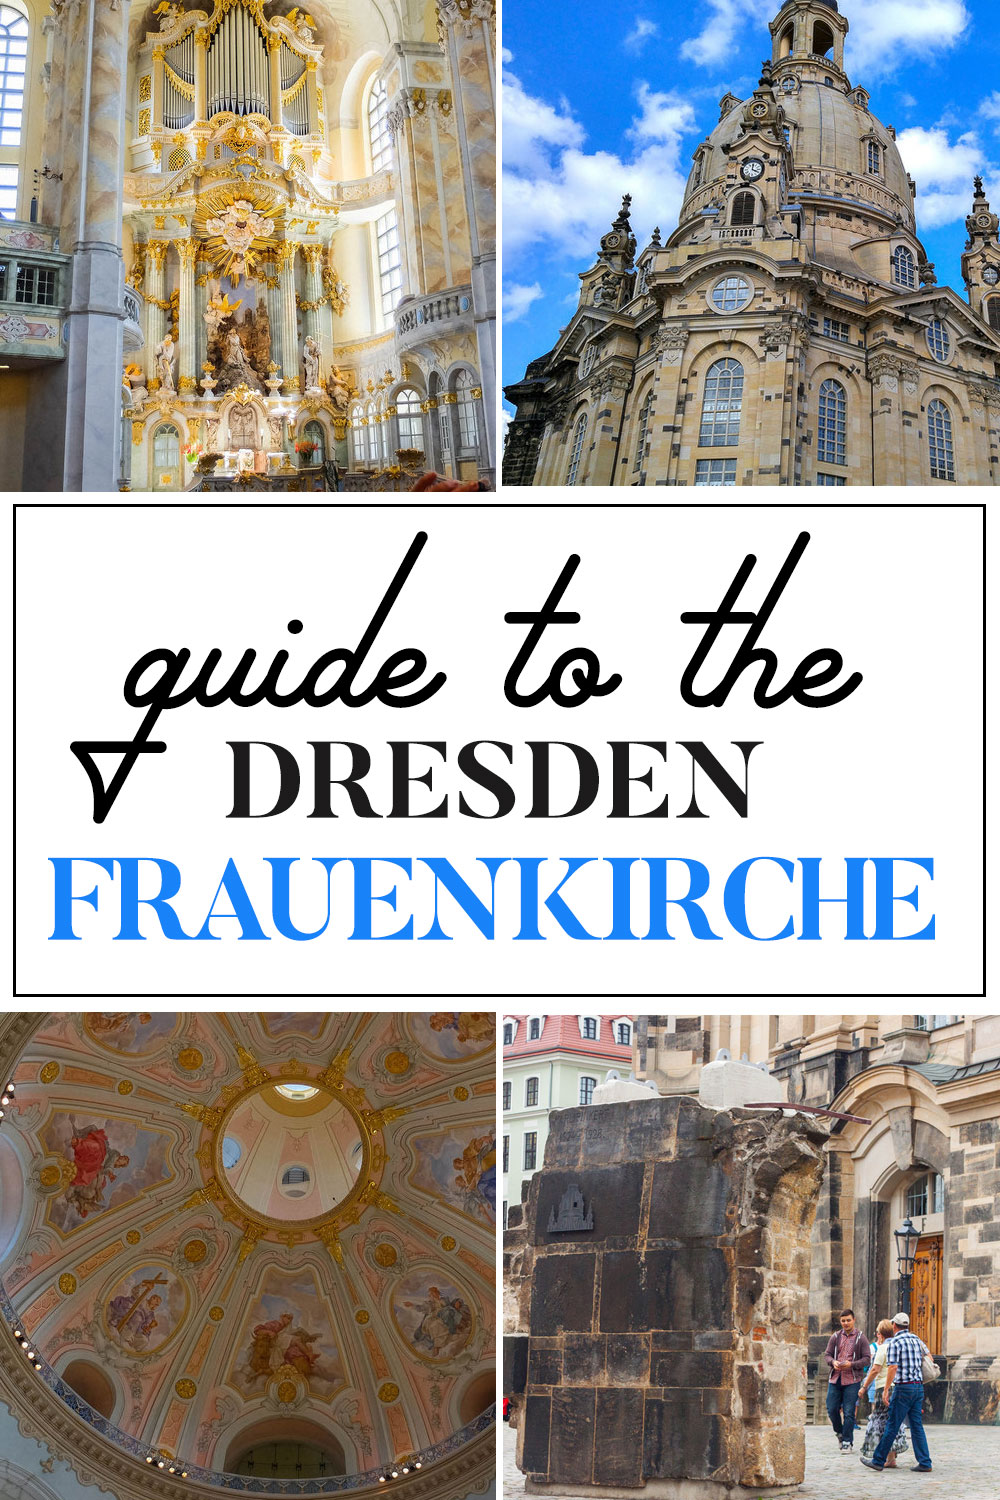 Guide to Dresden Frauenkirche